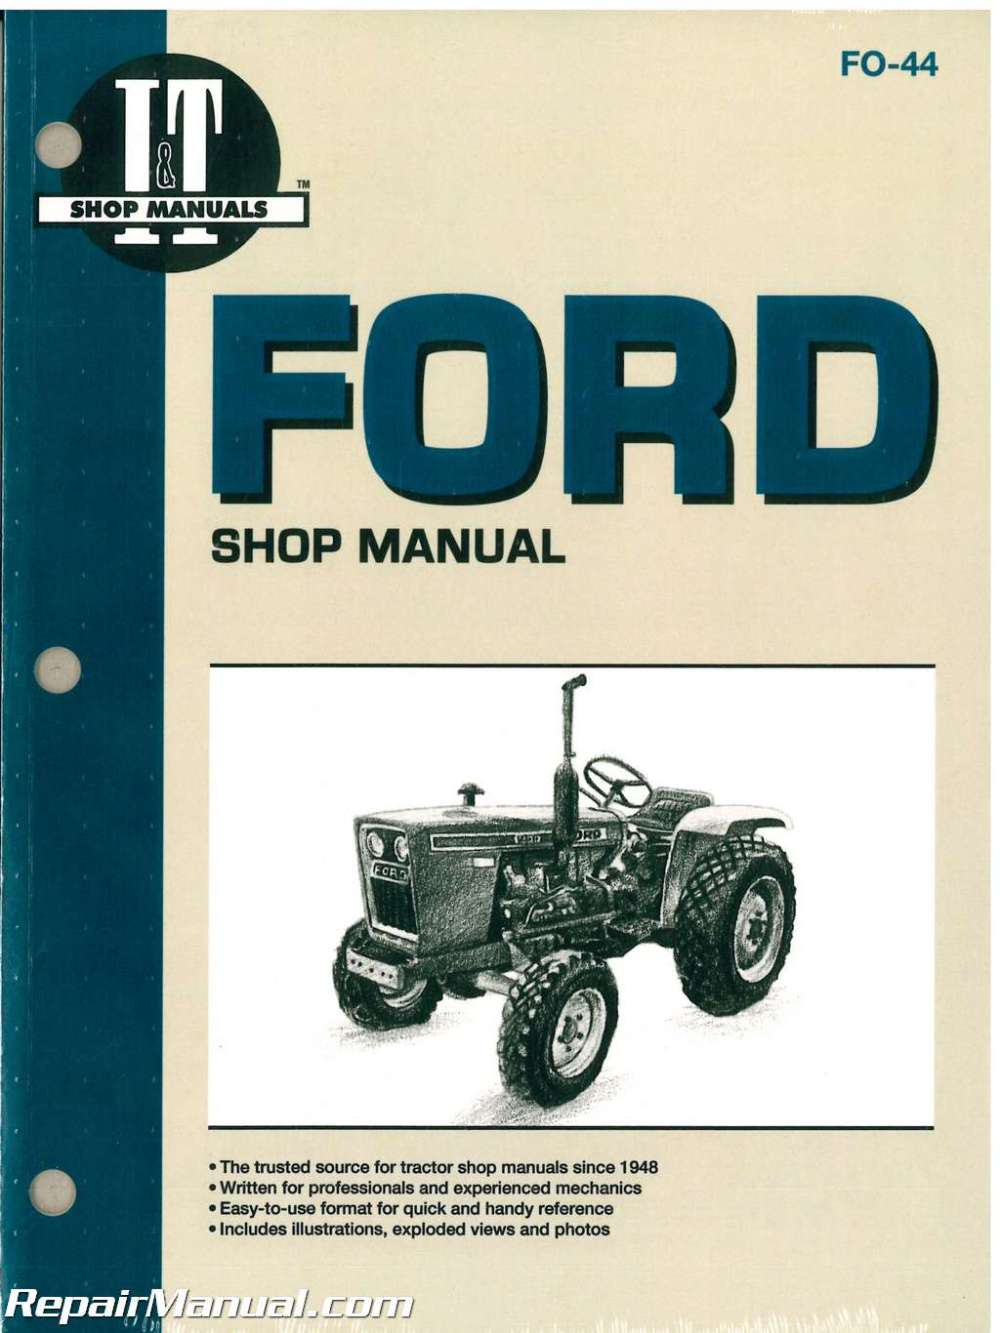 medium resolution of ford new holland 1100 1110 1200 1210 1300 1310 1500 1510 1700 1985 ford tractor 1700 wiring diagrams